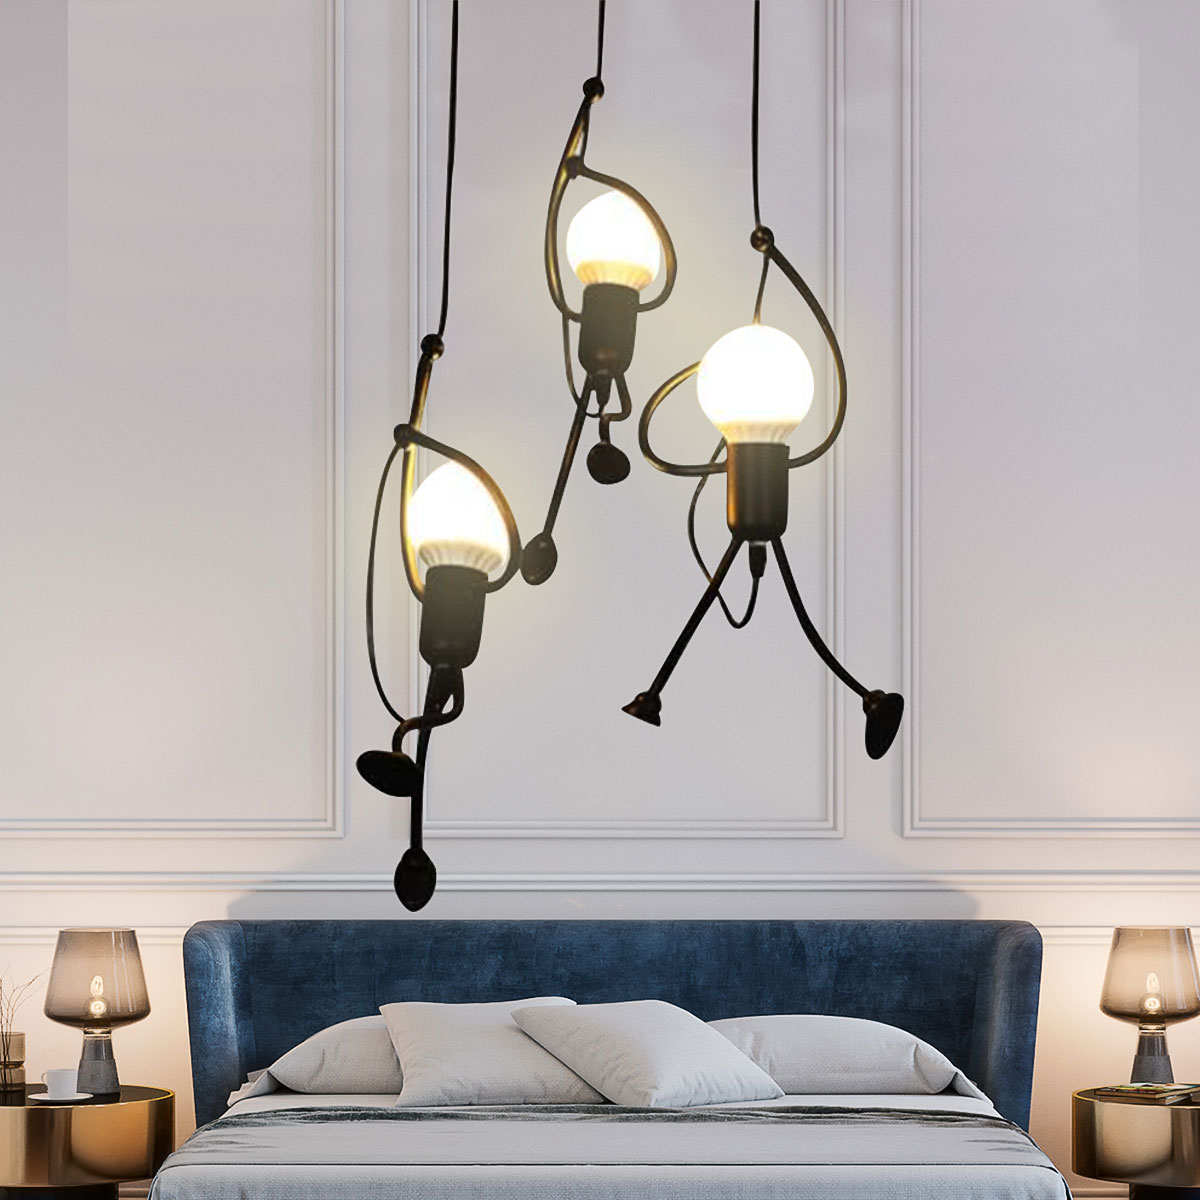 Unique Pendant Light Fixture Hanging Lamp Creative Small Metal Black Chandelier Lighting Adjustable Hanging Light Fixtures For Kids Room Bedroom Dining Room Walmart Com Walmart Com